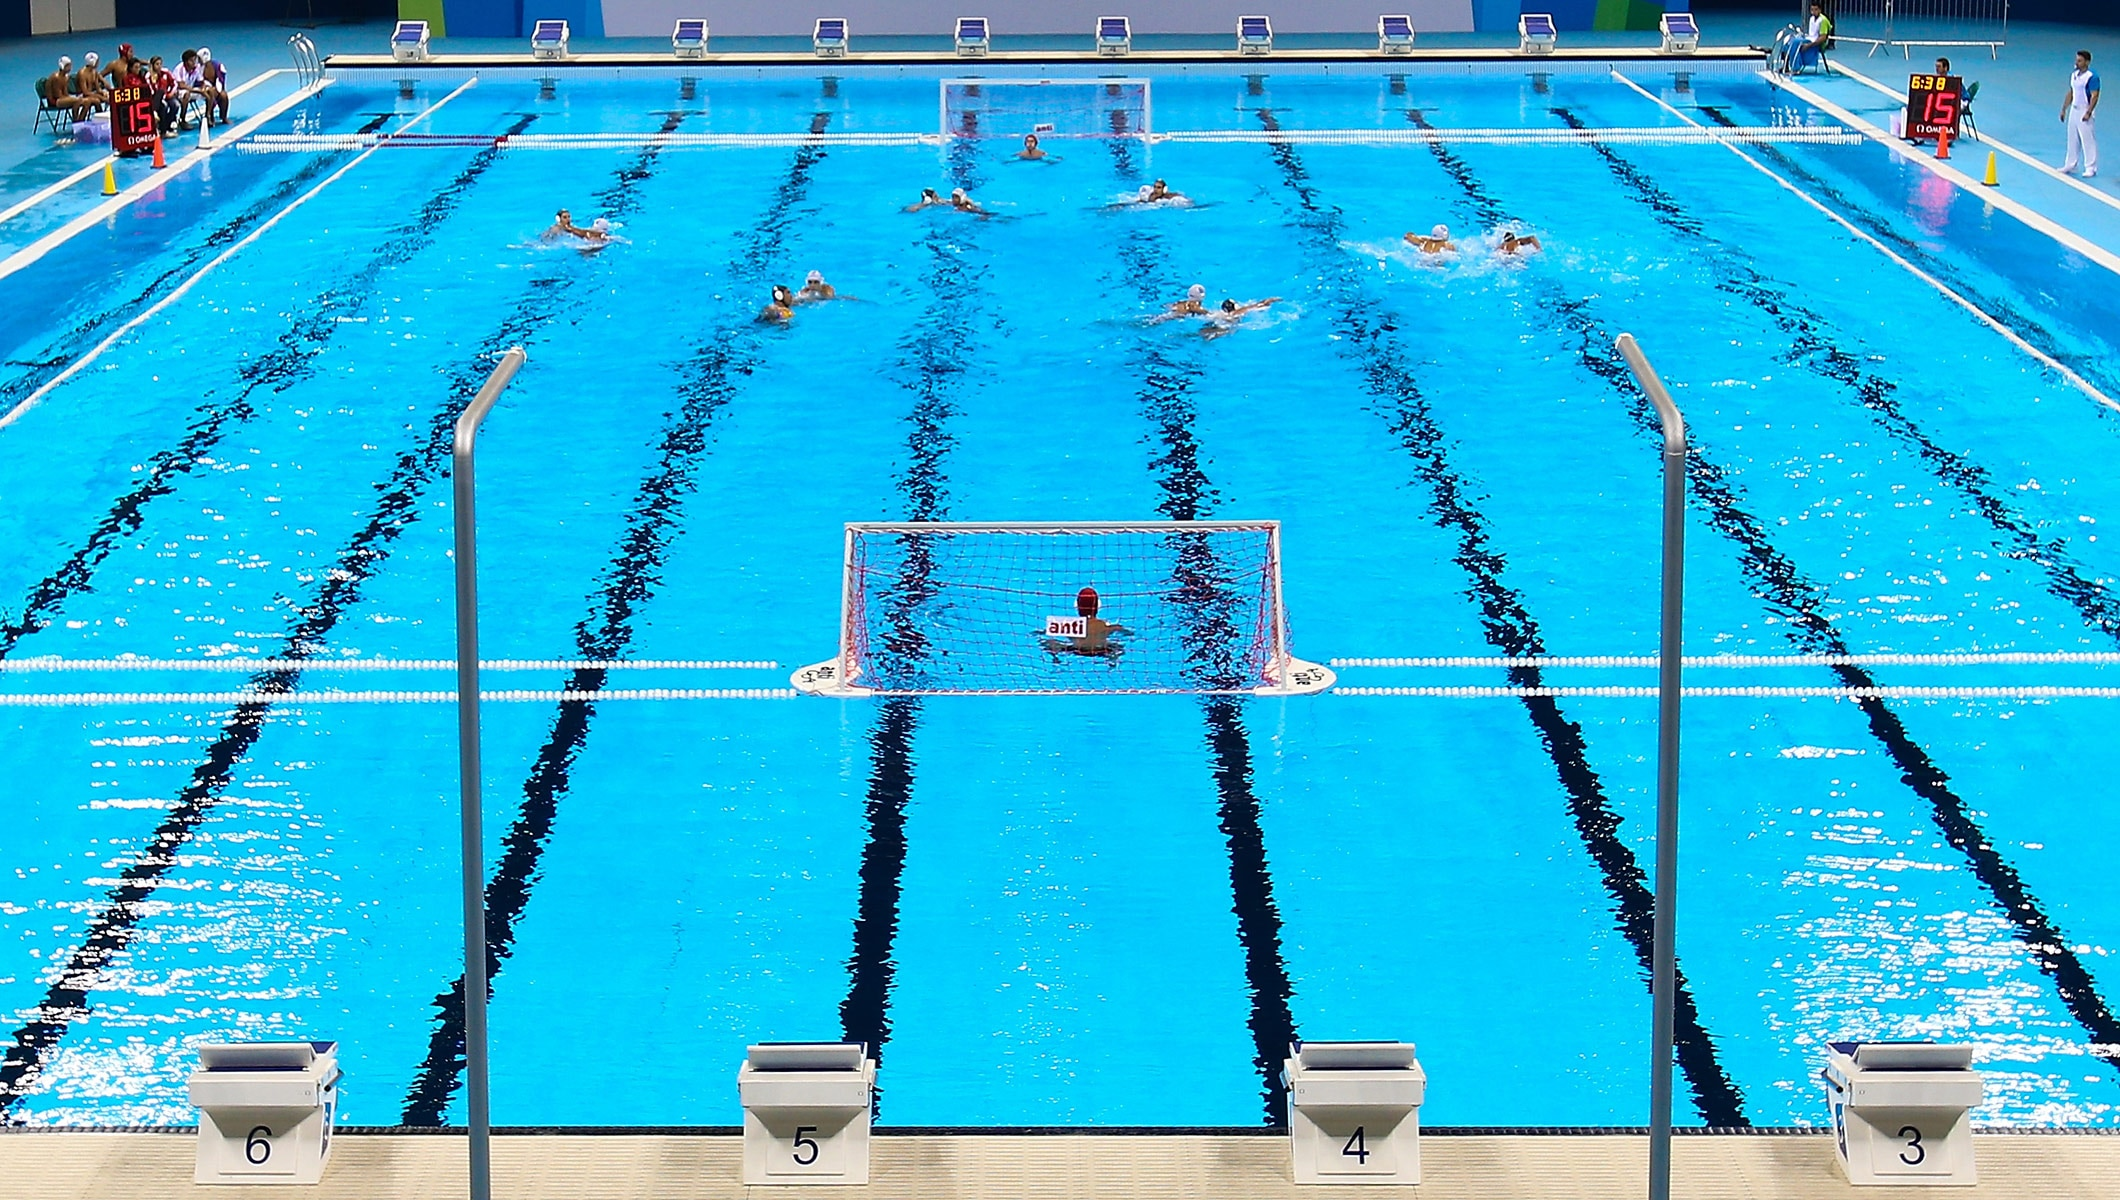 olympics - Olympic Swimming Pool 2017